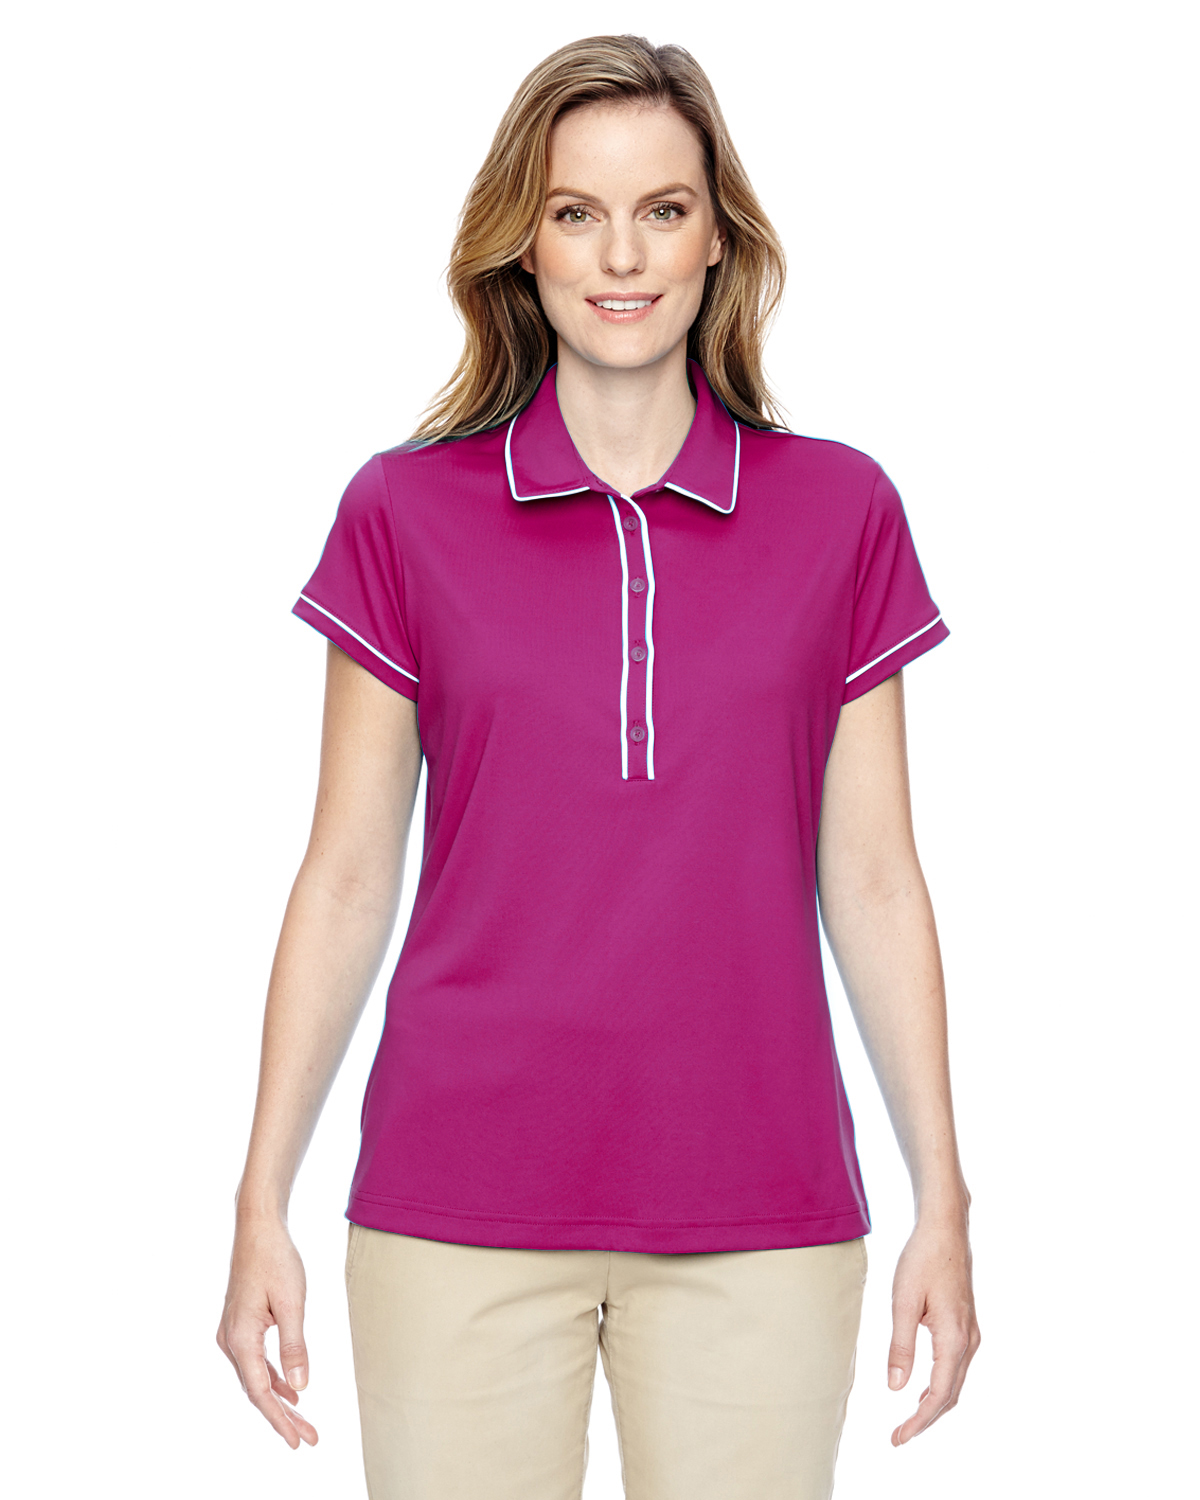 Adidas Golf Ladies Piped Fashion Polo